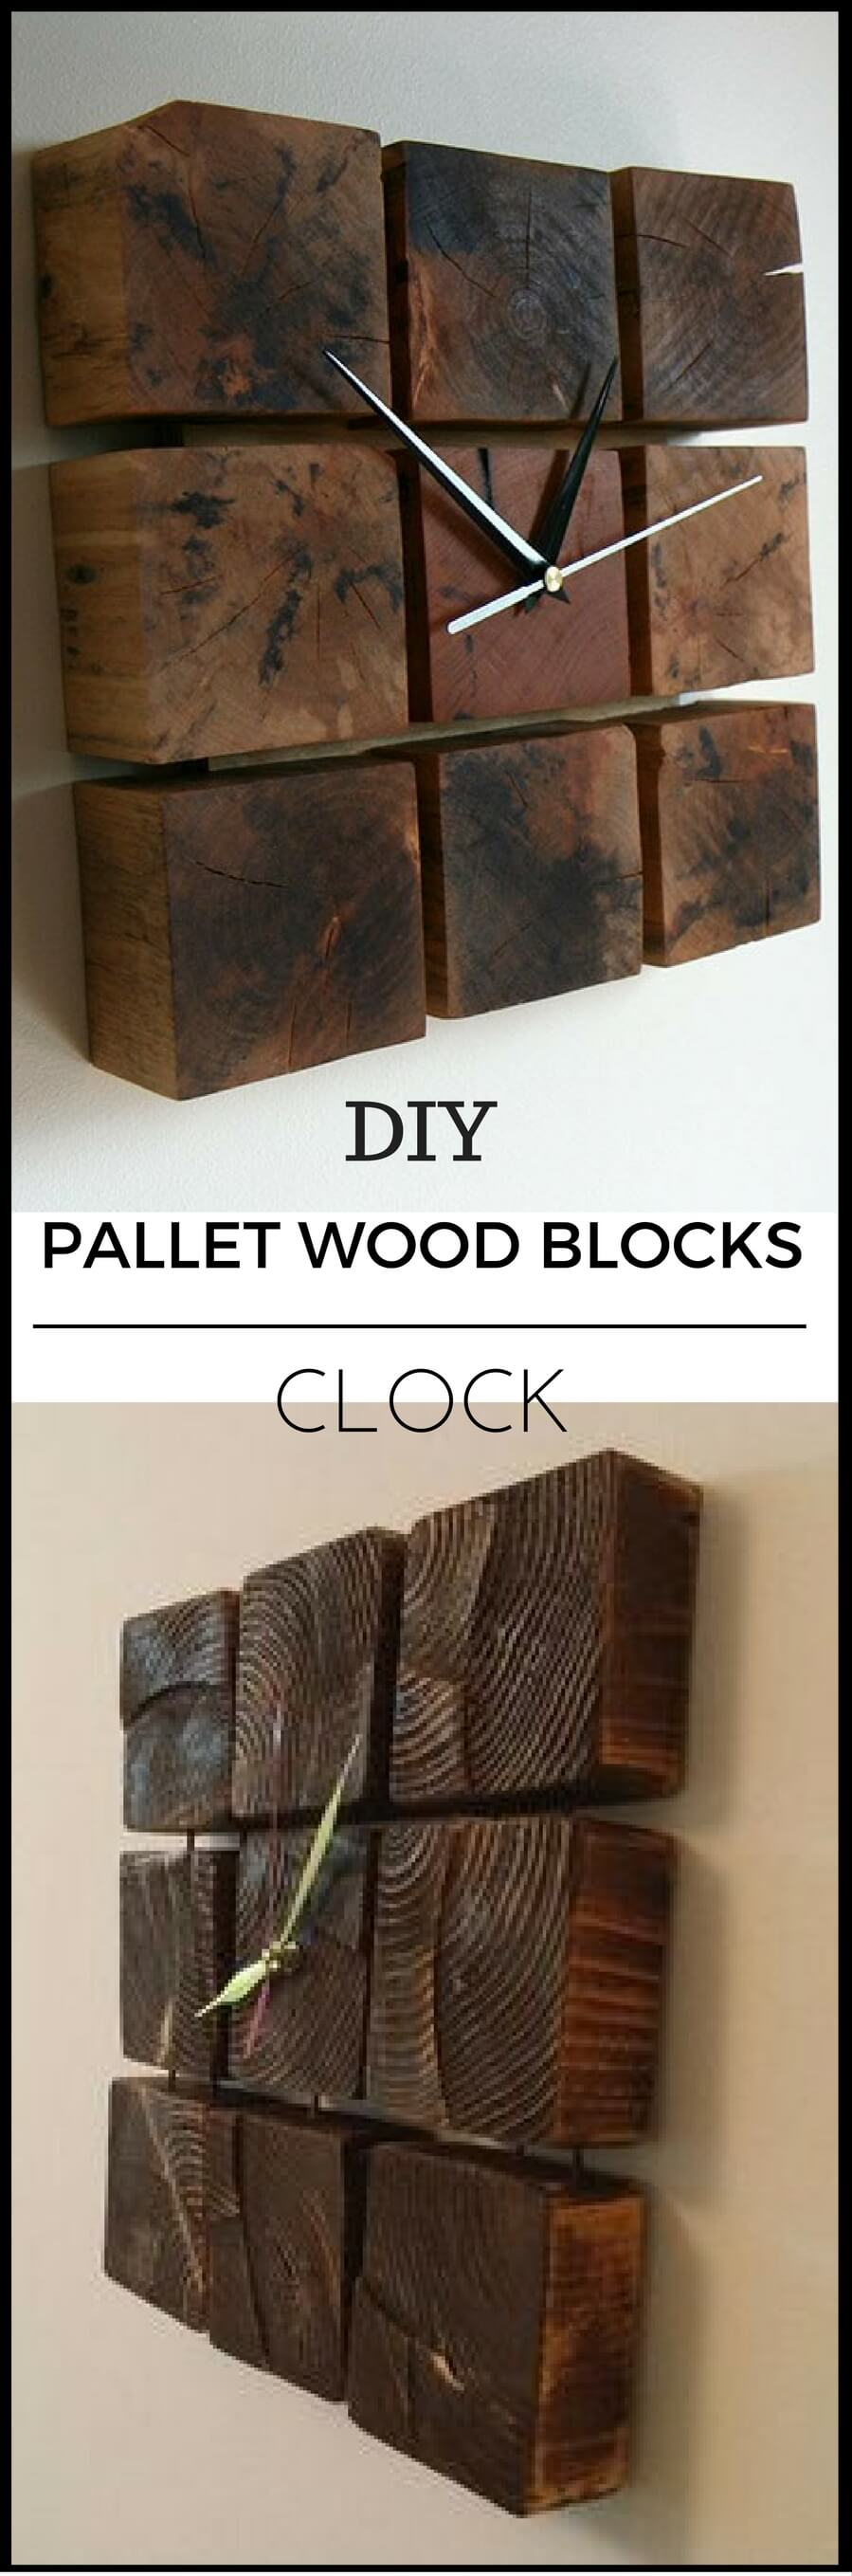 DIY Industrial Wall Clock Concept